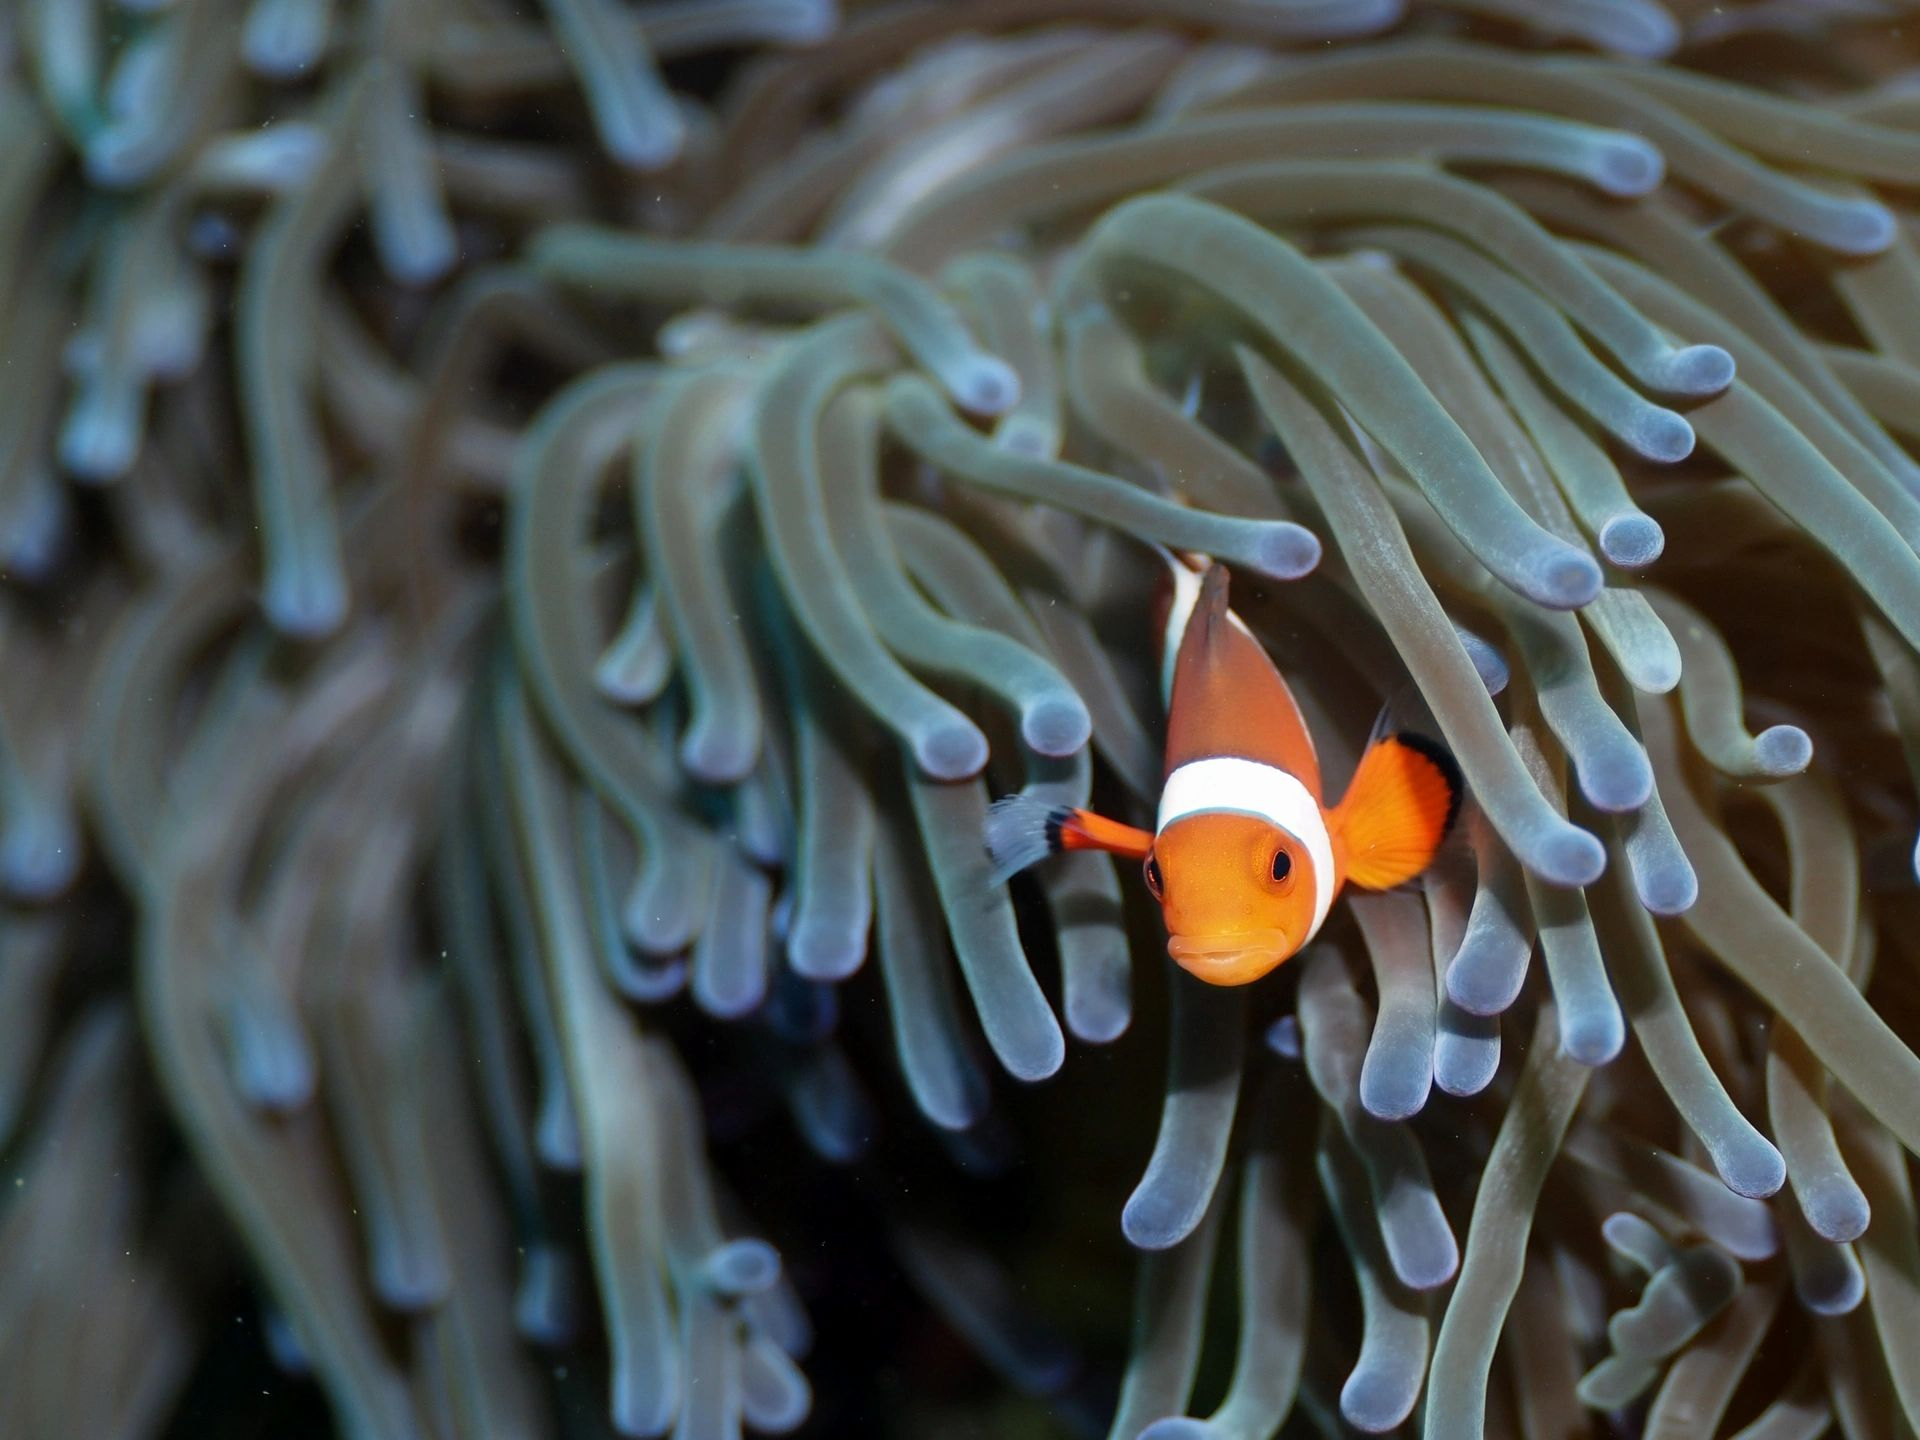 Saltwater aquarium Pecula Clownfish with Anenome